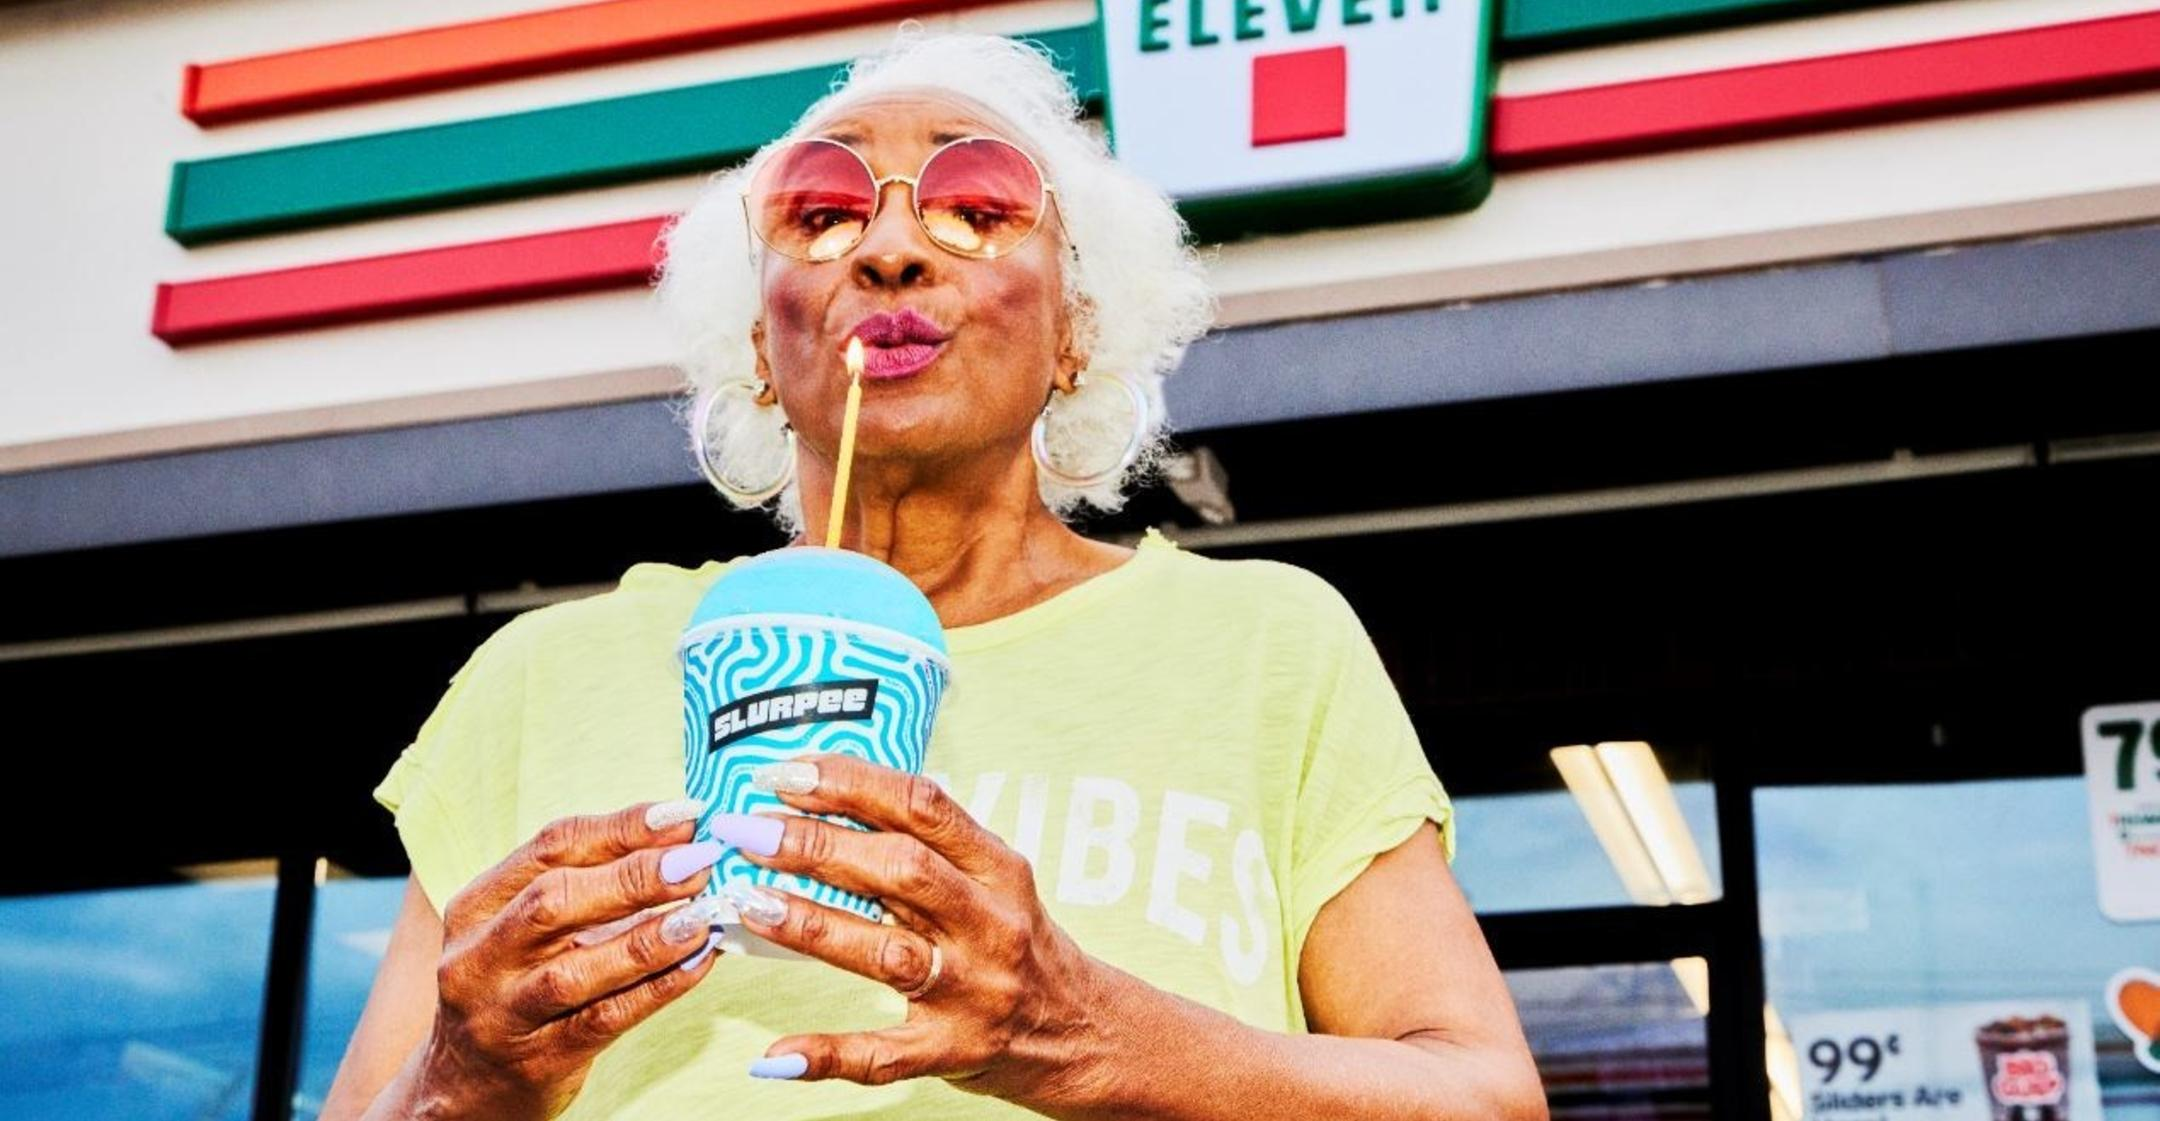 july  eleven letting you pick any day of the month to receive free slurpee